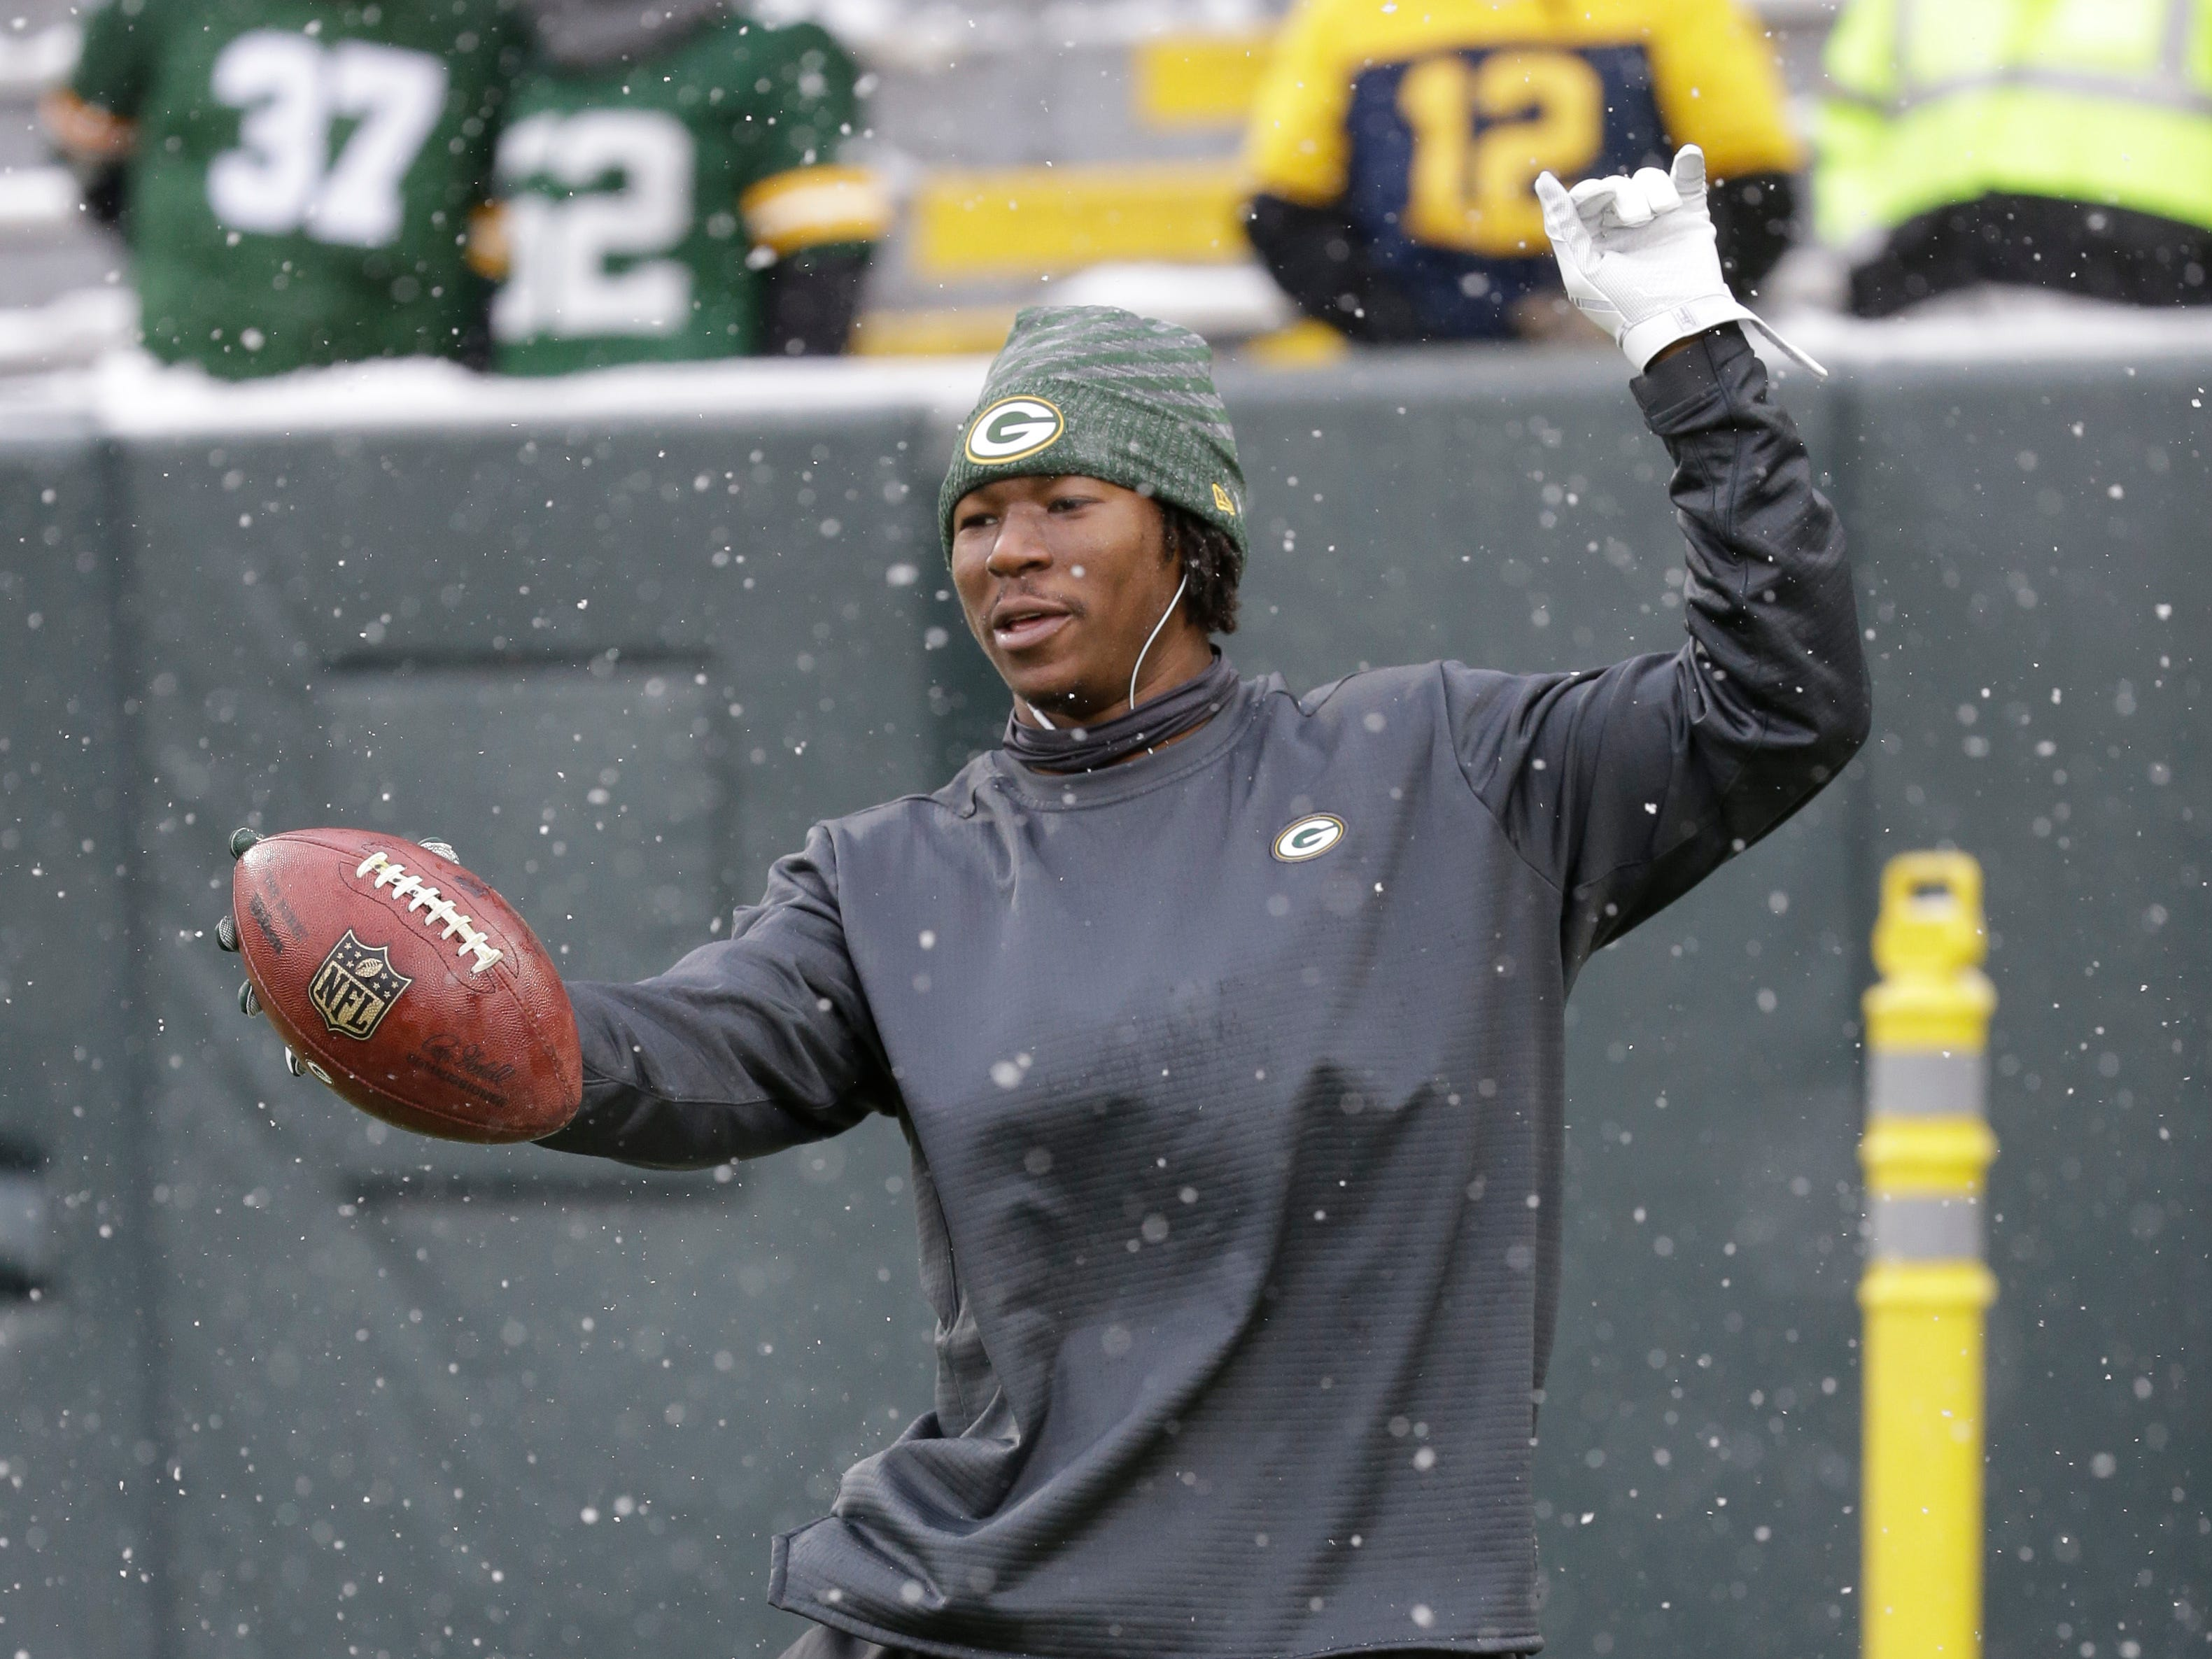 Green Bay Packers running back Jamaal Williams warms up before an NFL football game between the Green Bay Packers and the Arizona Cardinals Sunday, Dec. 2, 2018, in Green Bay, Wis. (AP Photo/Mike Roemer)